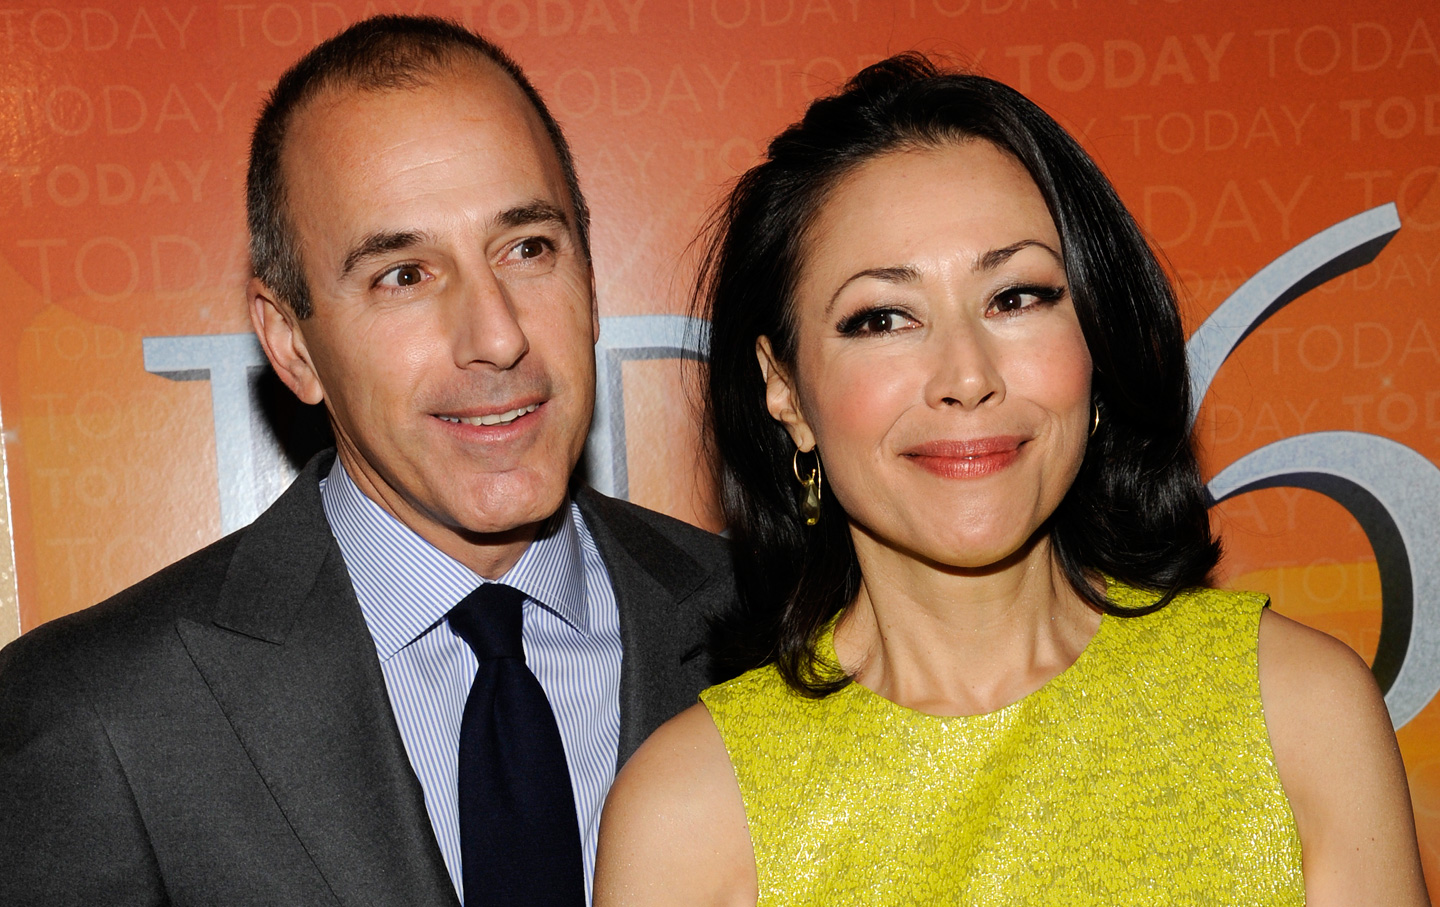 Matt-Lauer-Ann-Curry-ap-img